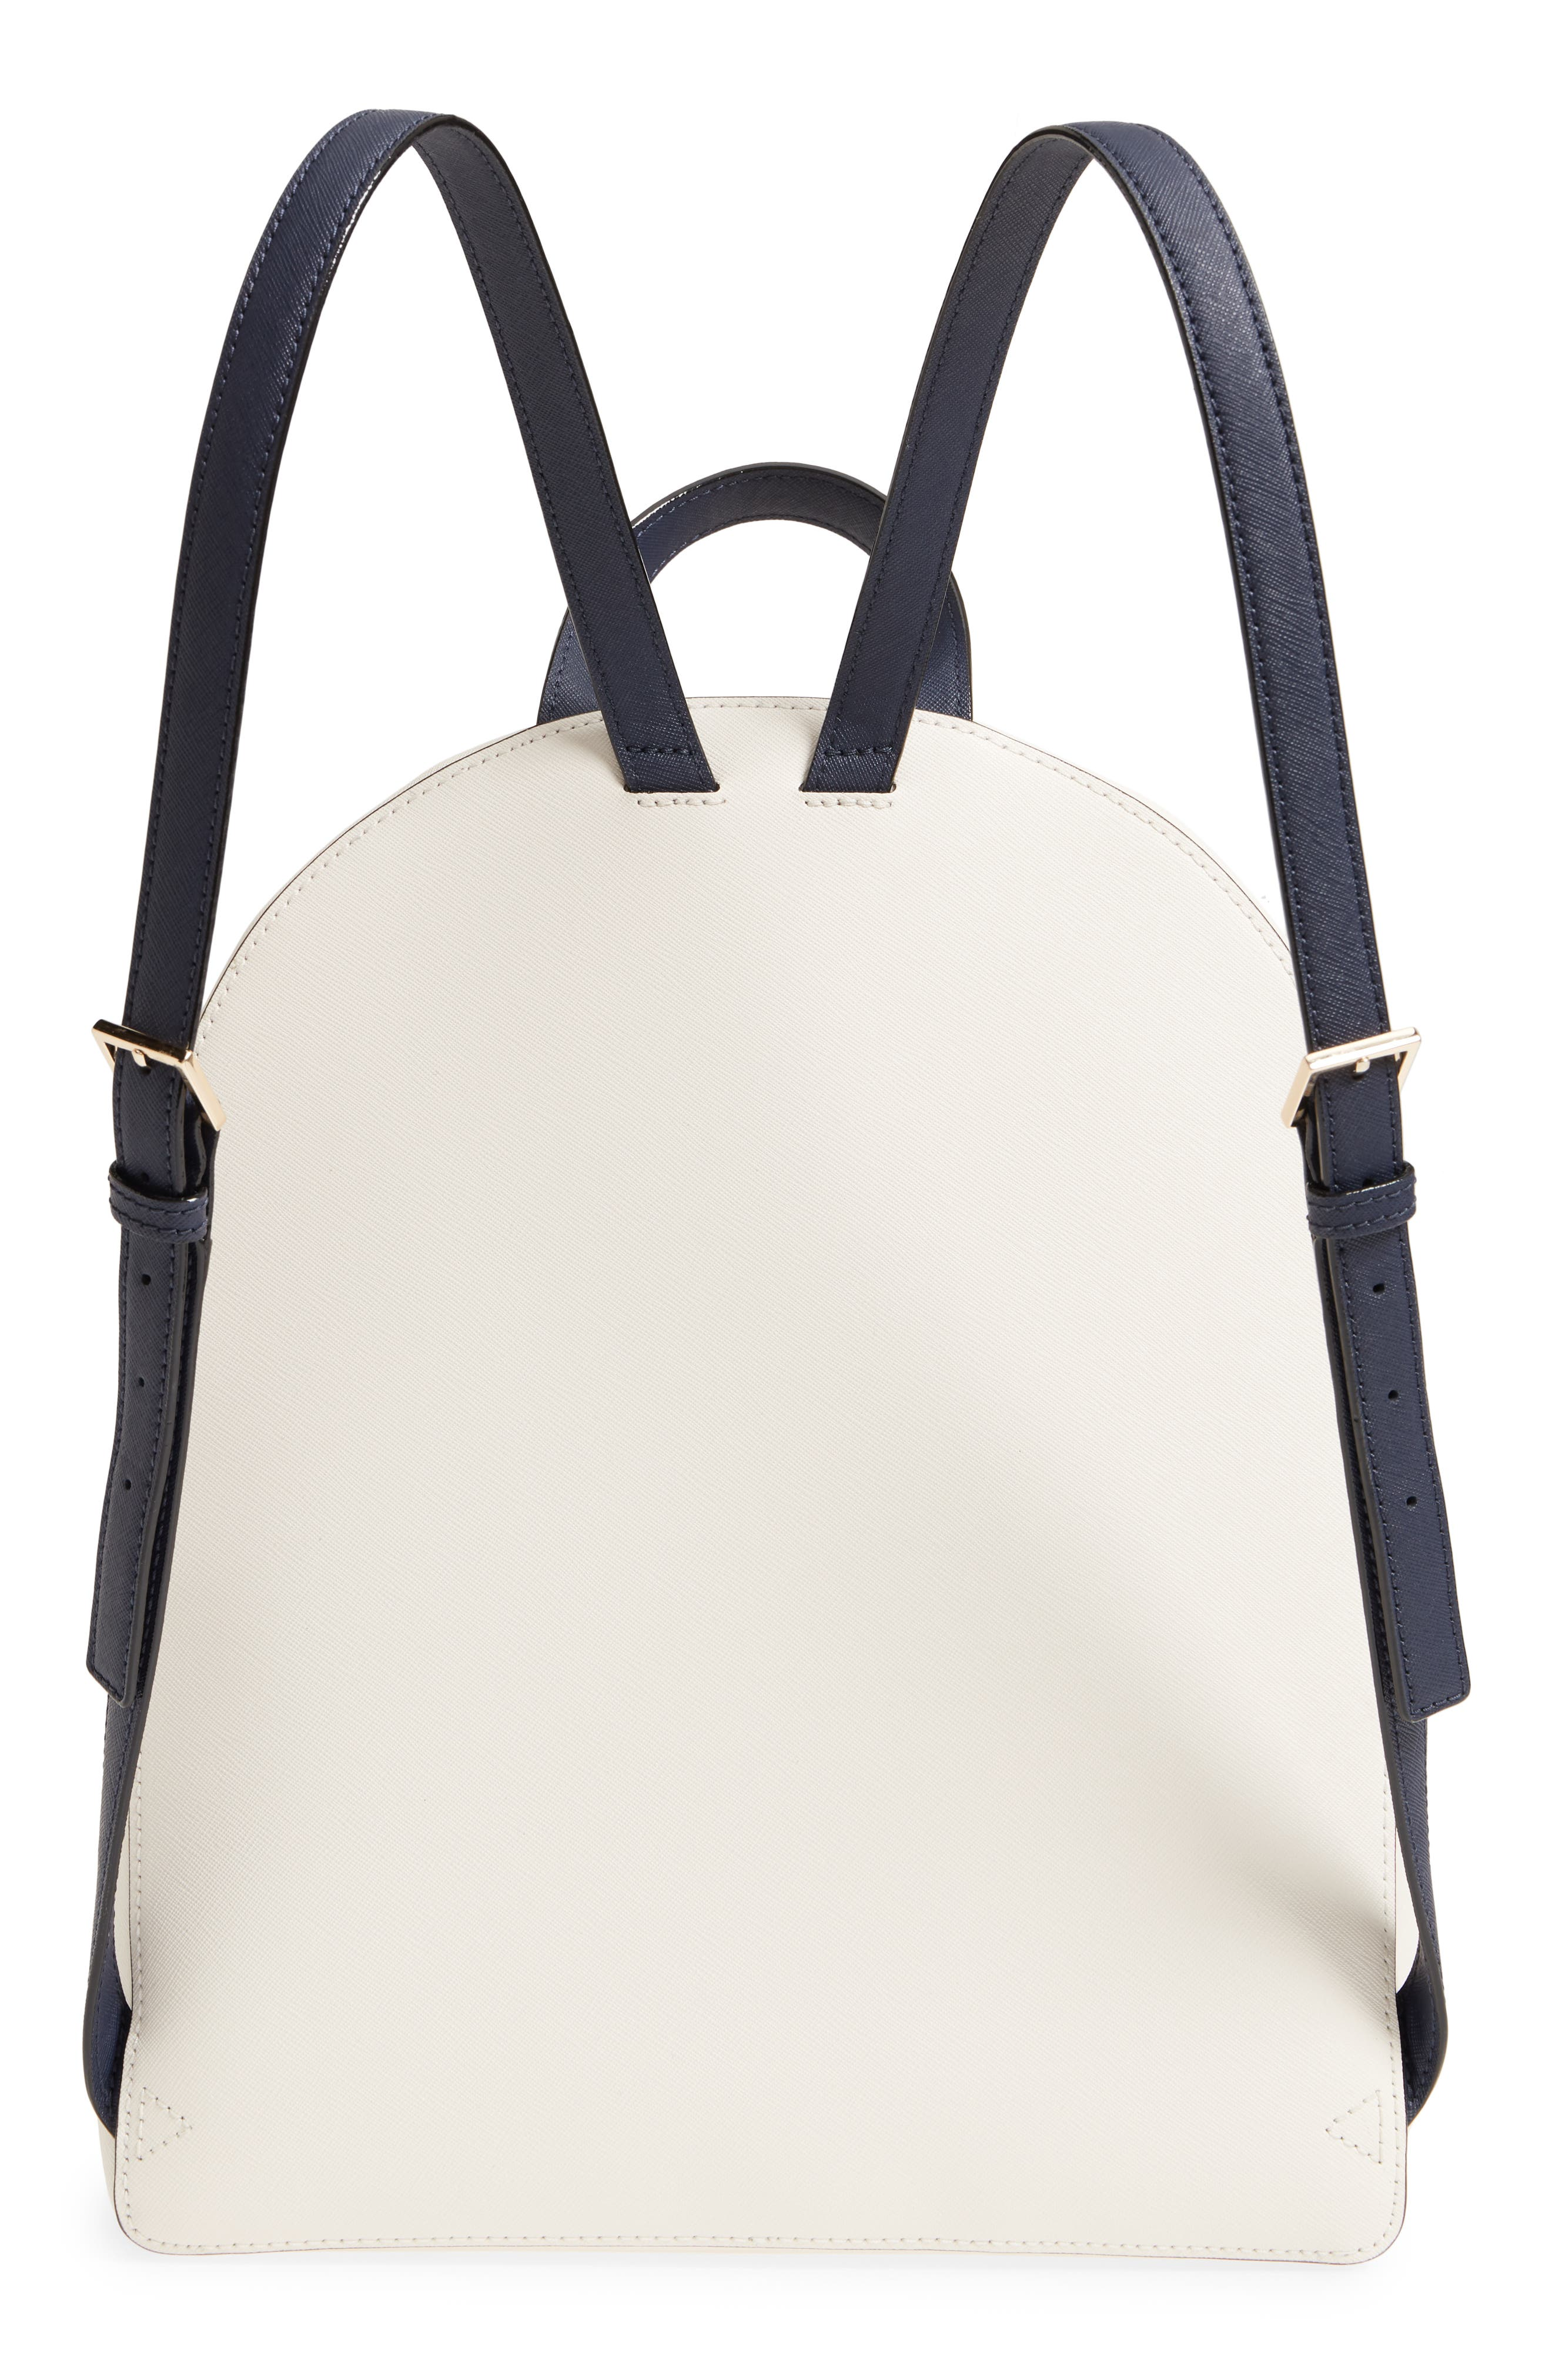 cameron street – hartley leather backpack,                             Alternate thumbnail 3, color,                             Cement/ Morning Multi